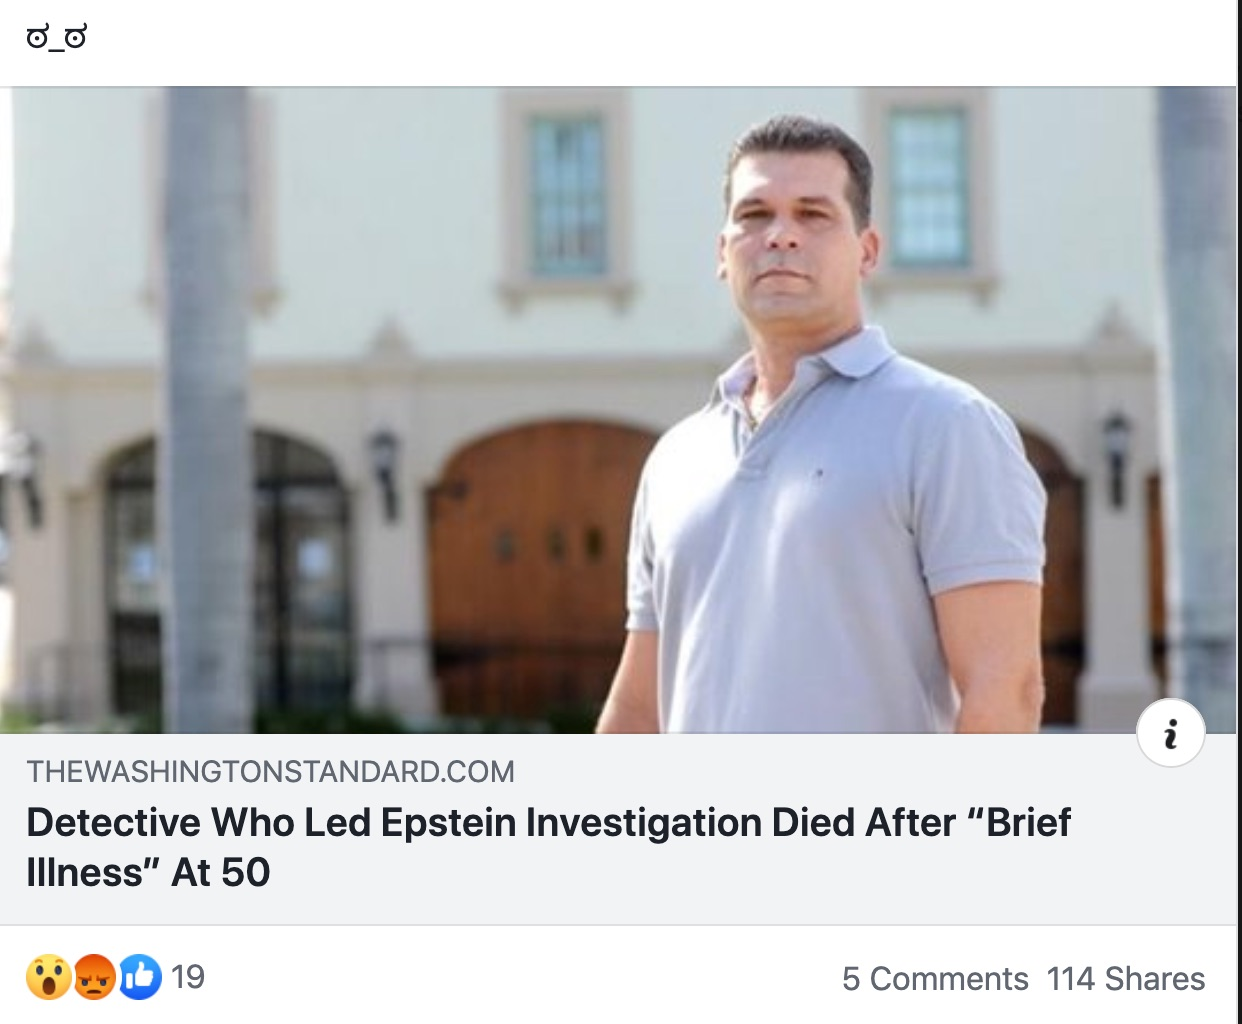 _2__detective_who_led_epstein_-_died after brief illness 50